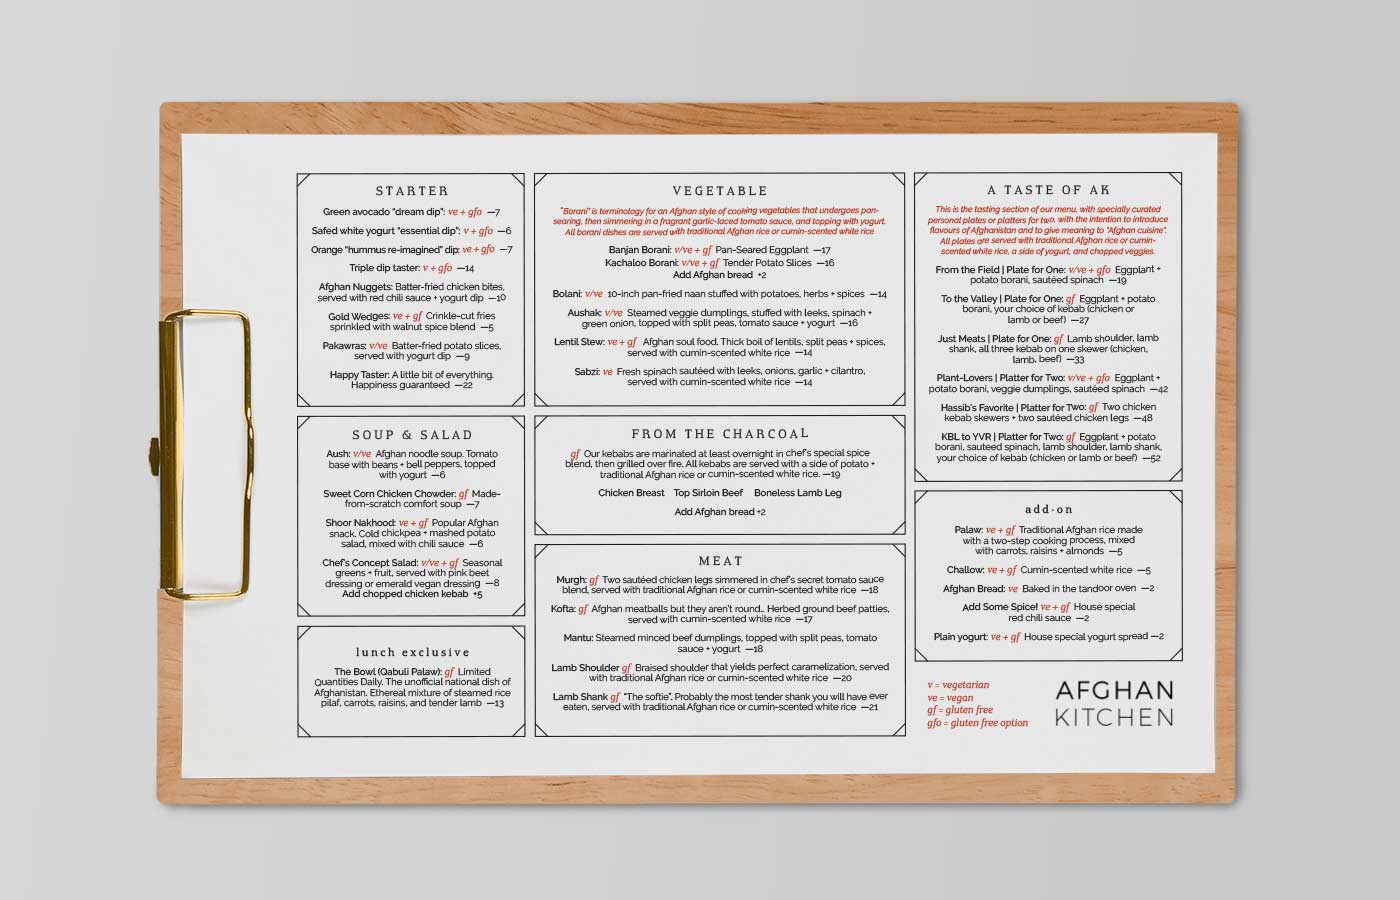 covetdesign_logo-design_branding_package-design_graphic-designer_vancouver_work_wide_afghankitchen-menu-food